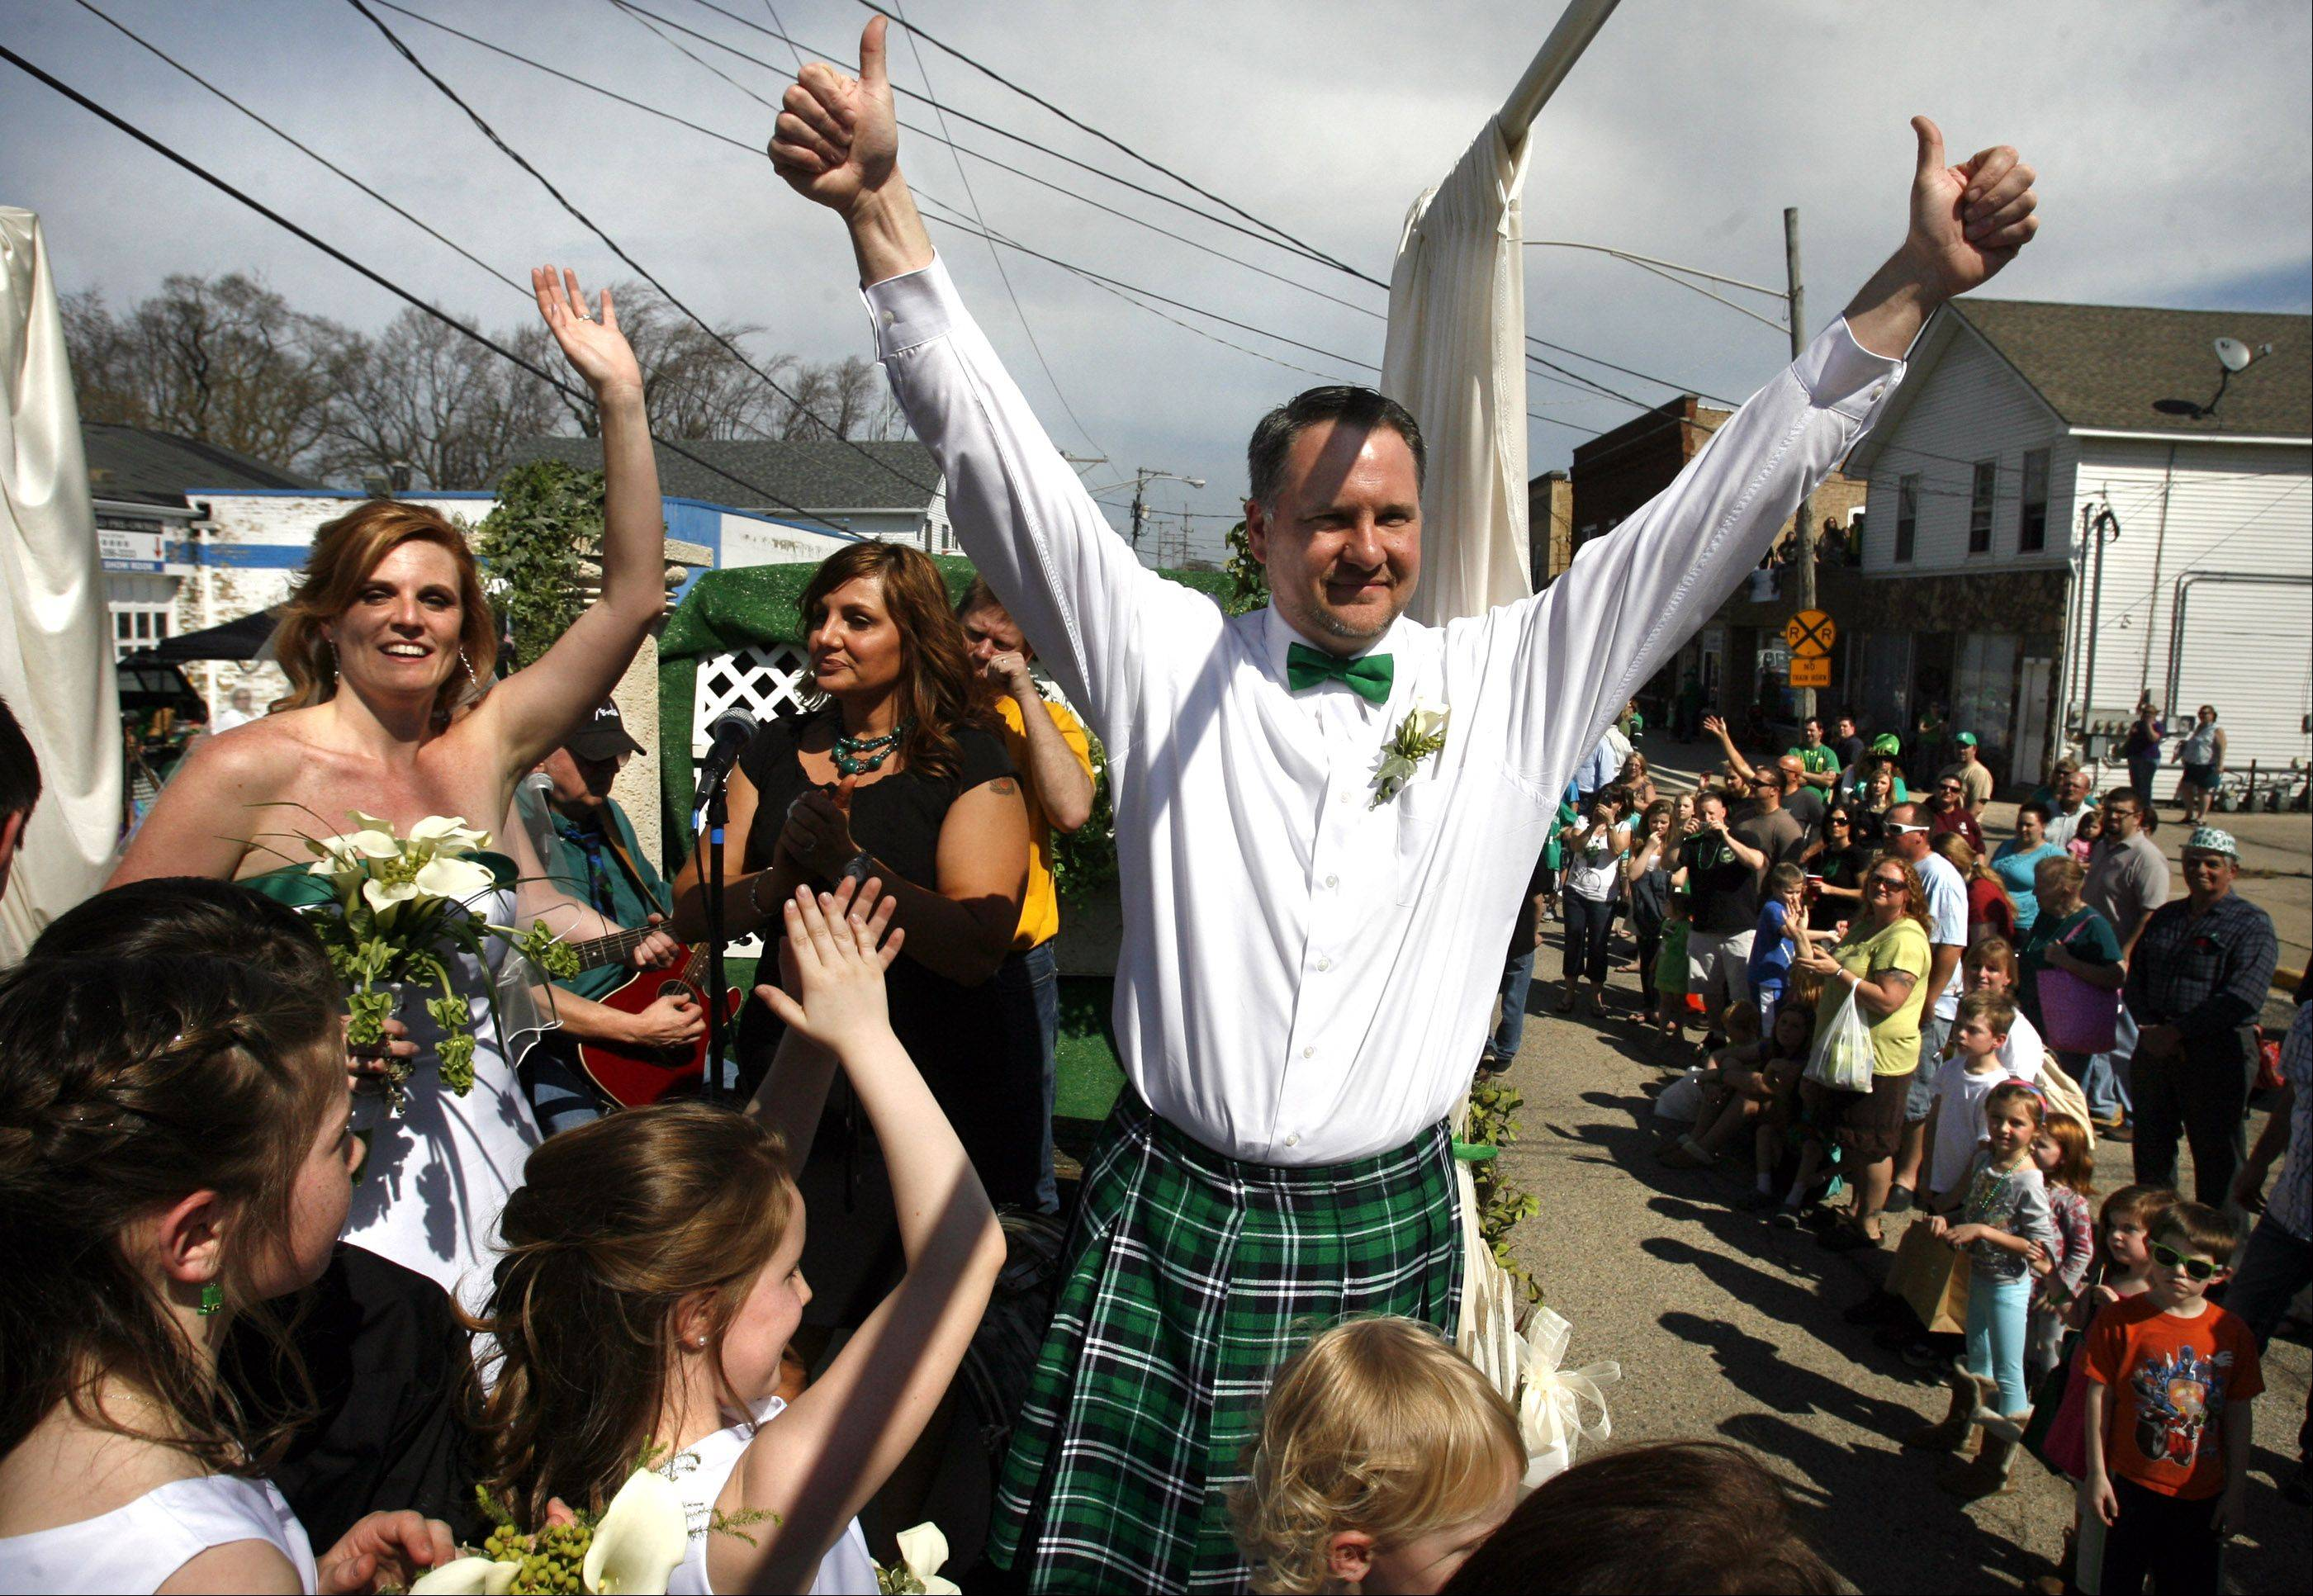 Tara Teschky and Paul Quinn of Libertyville wave to crowd after getting married on a float during the Lake Villa St. Patrick's Day parade on Saturday, March 17th.